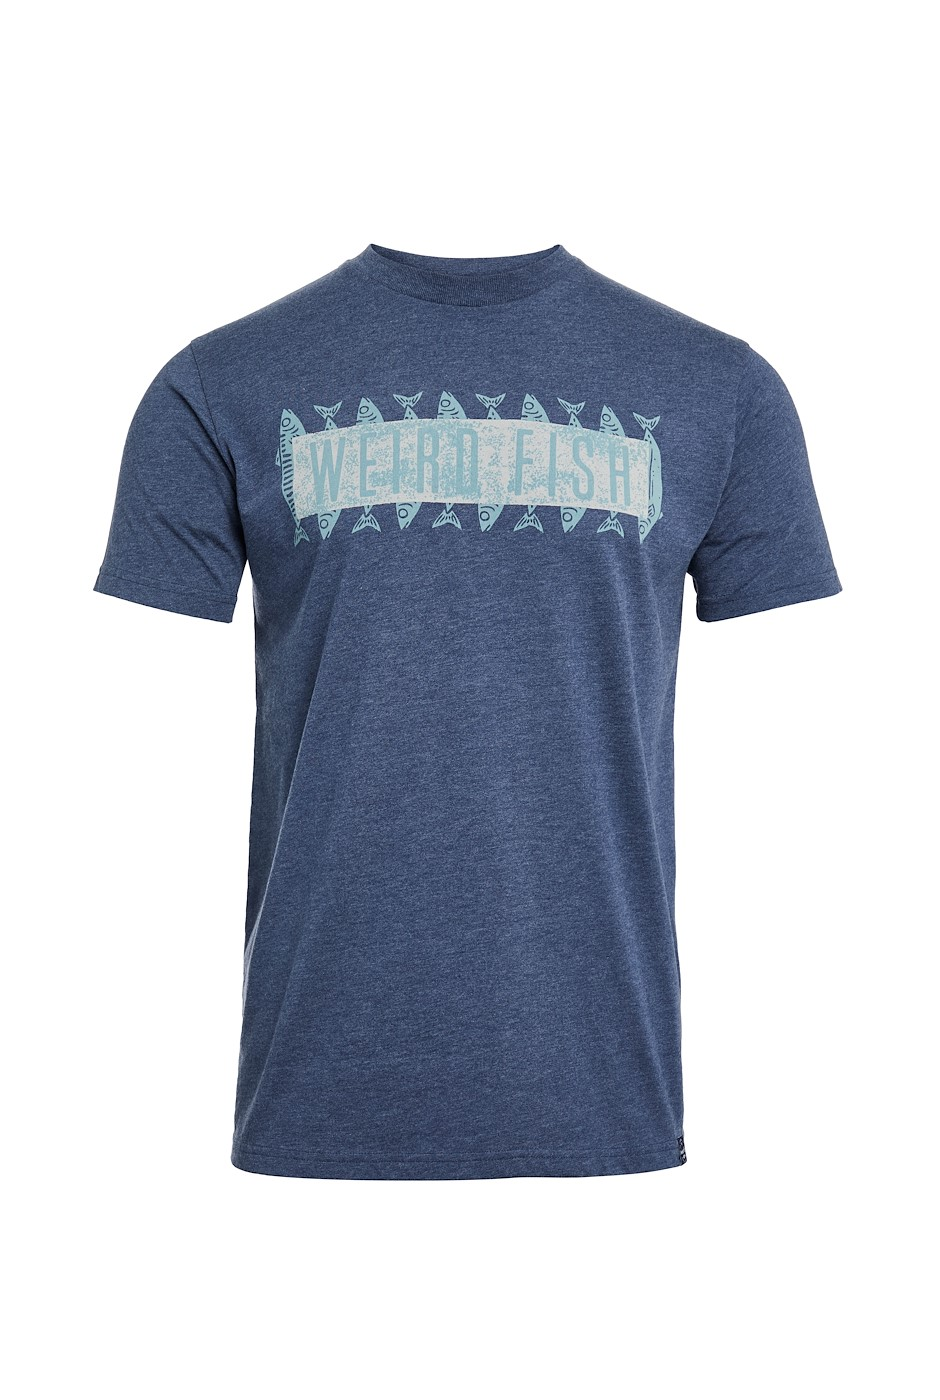 Mackie Eco Branded Graphic T-Shirt Navy